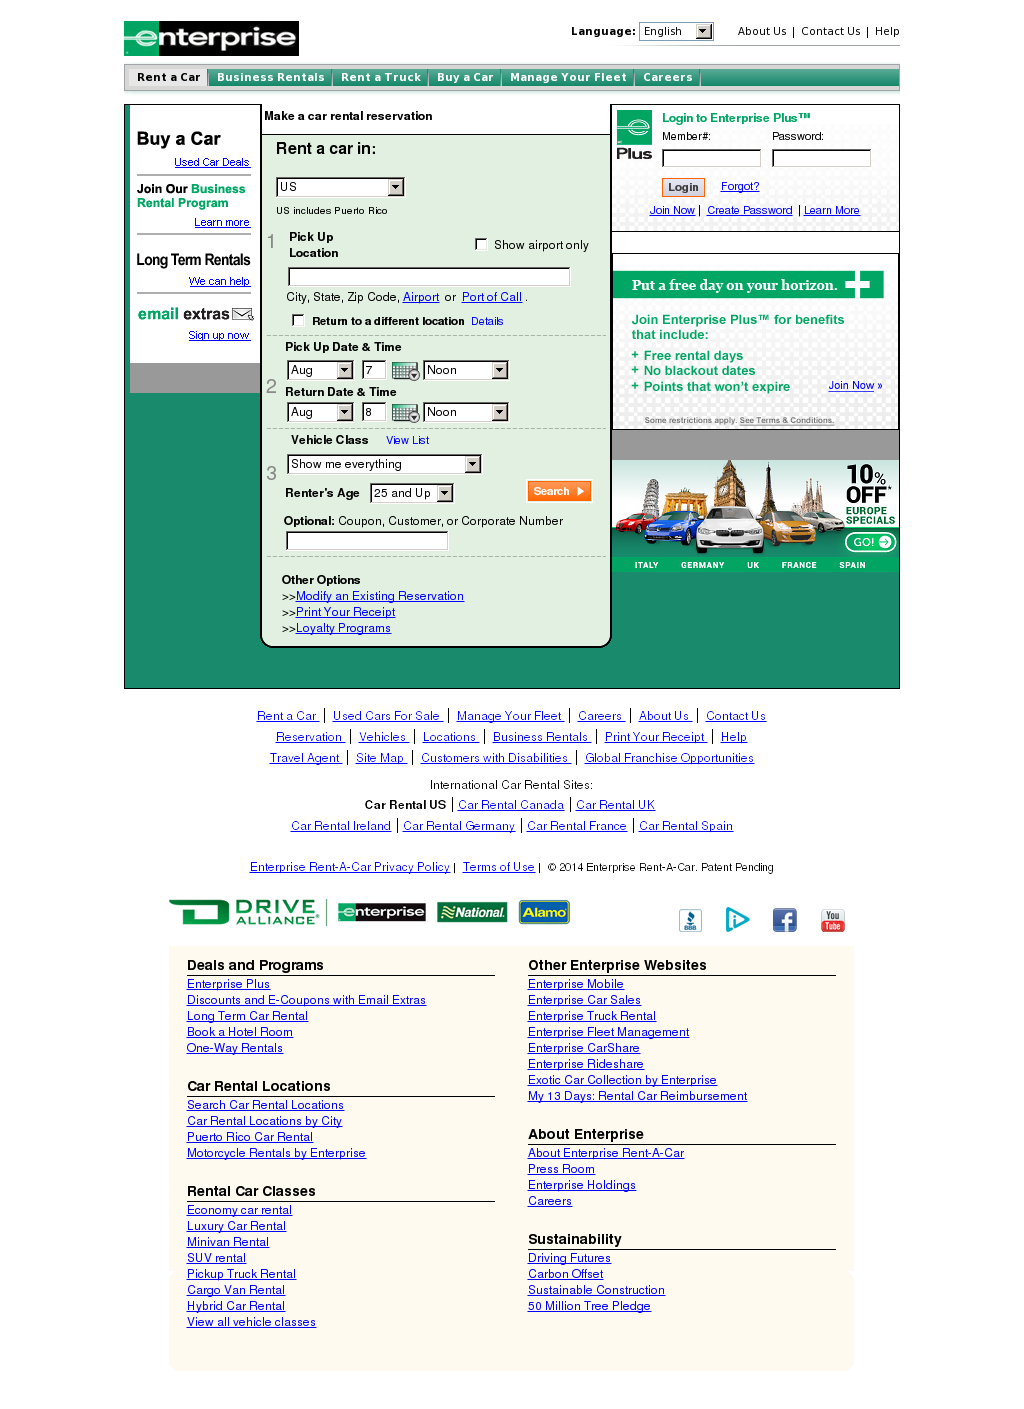 enterprise coupon customer or corporate number